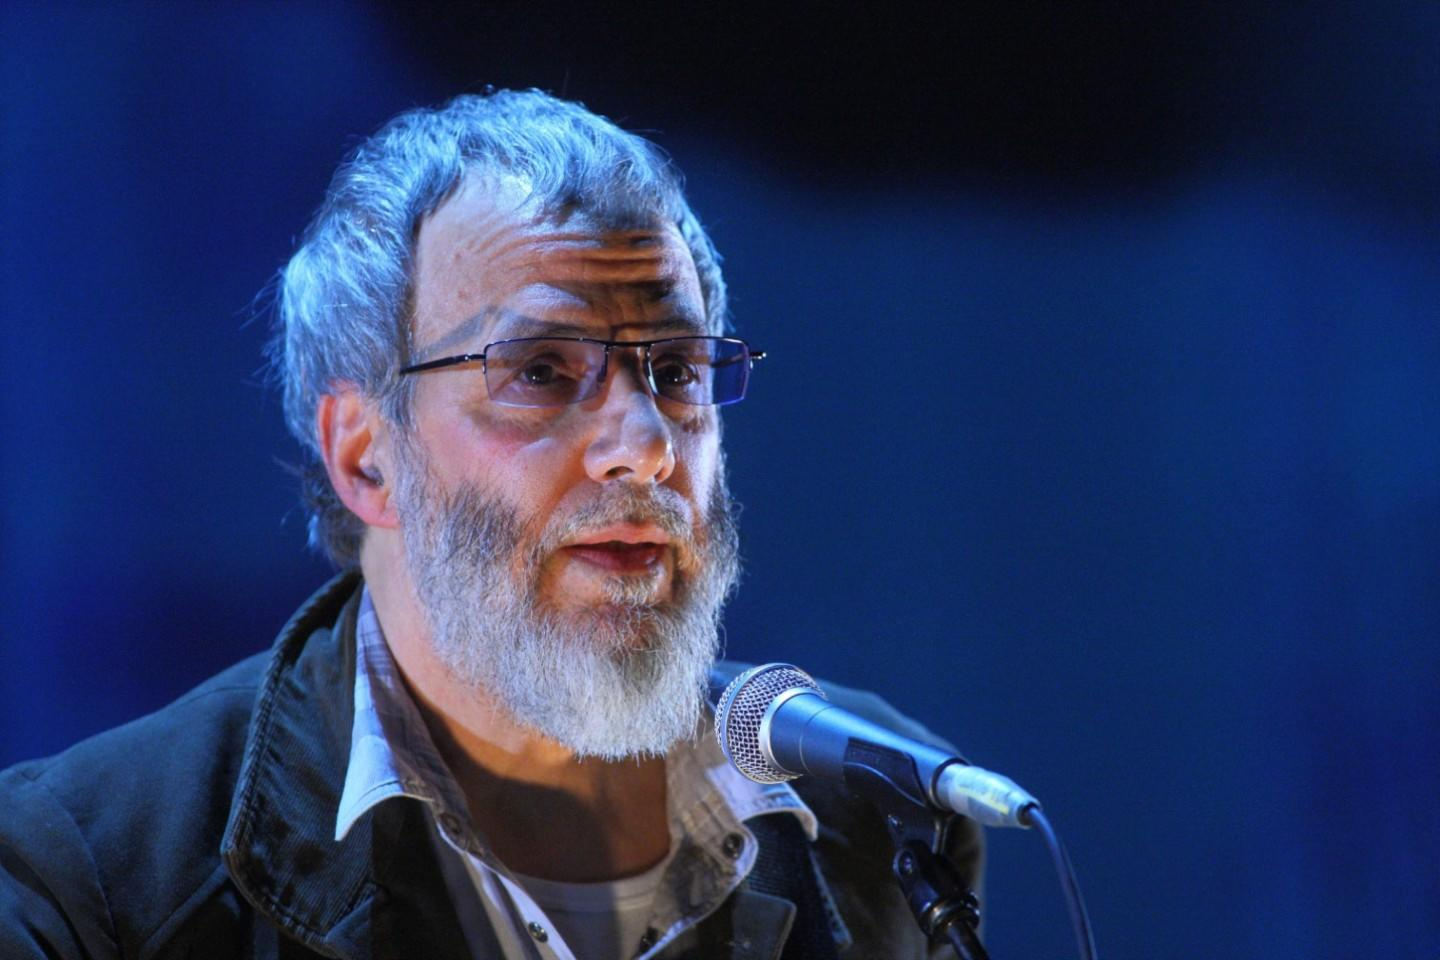 Cat Stevens Tour 2020.Cat Stevens Tickets Cat Stevens Tour Dates 2020 And